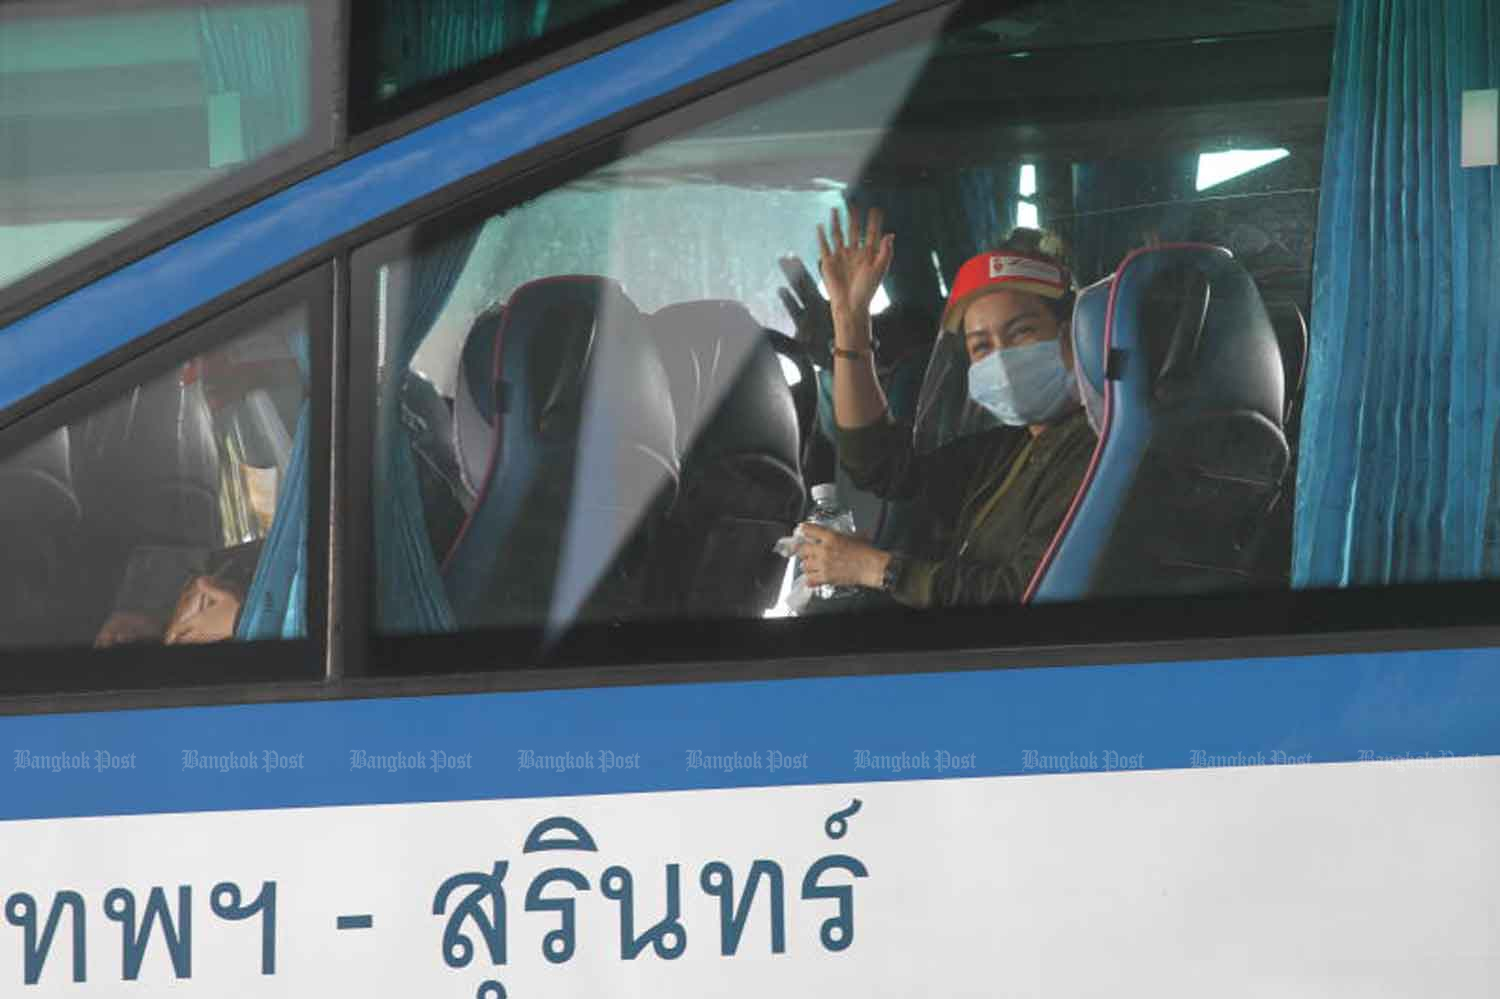 A Thai returnee from India waves to photographers at Suvanabhumi airport before being taken to 14-day quarantine at premises in Samut Prakan province on Thursday. (Photo: Nutthawat Wicheanbut)